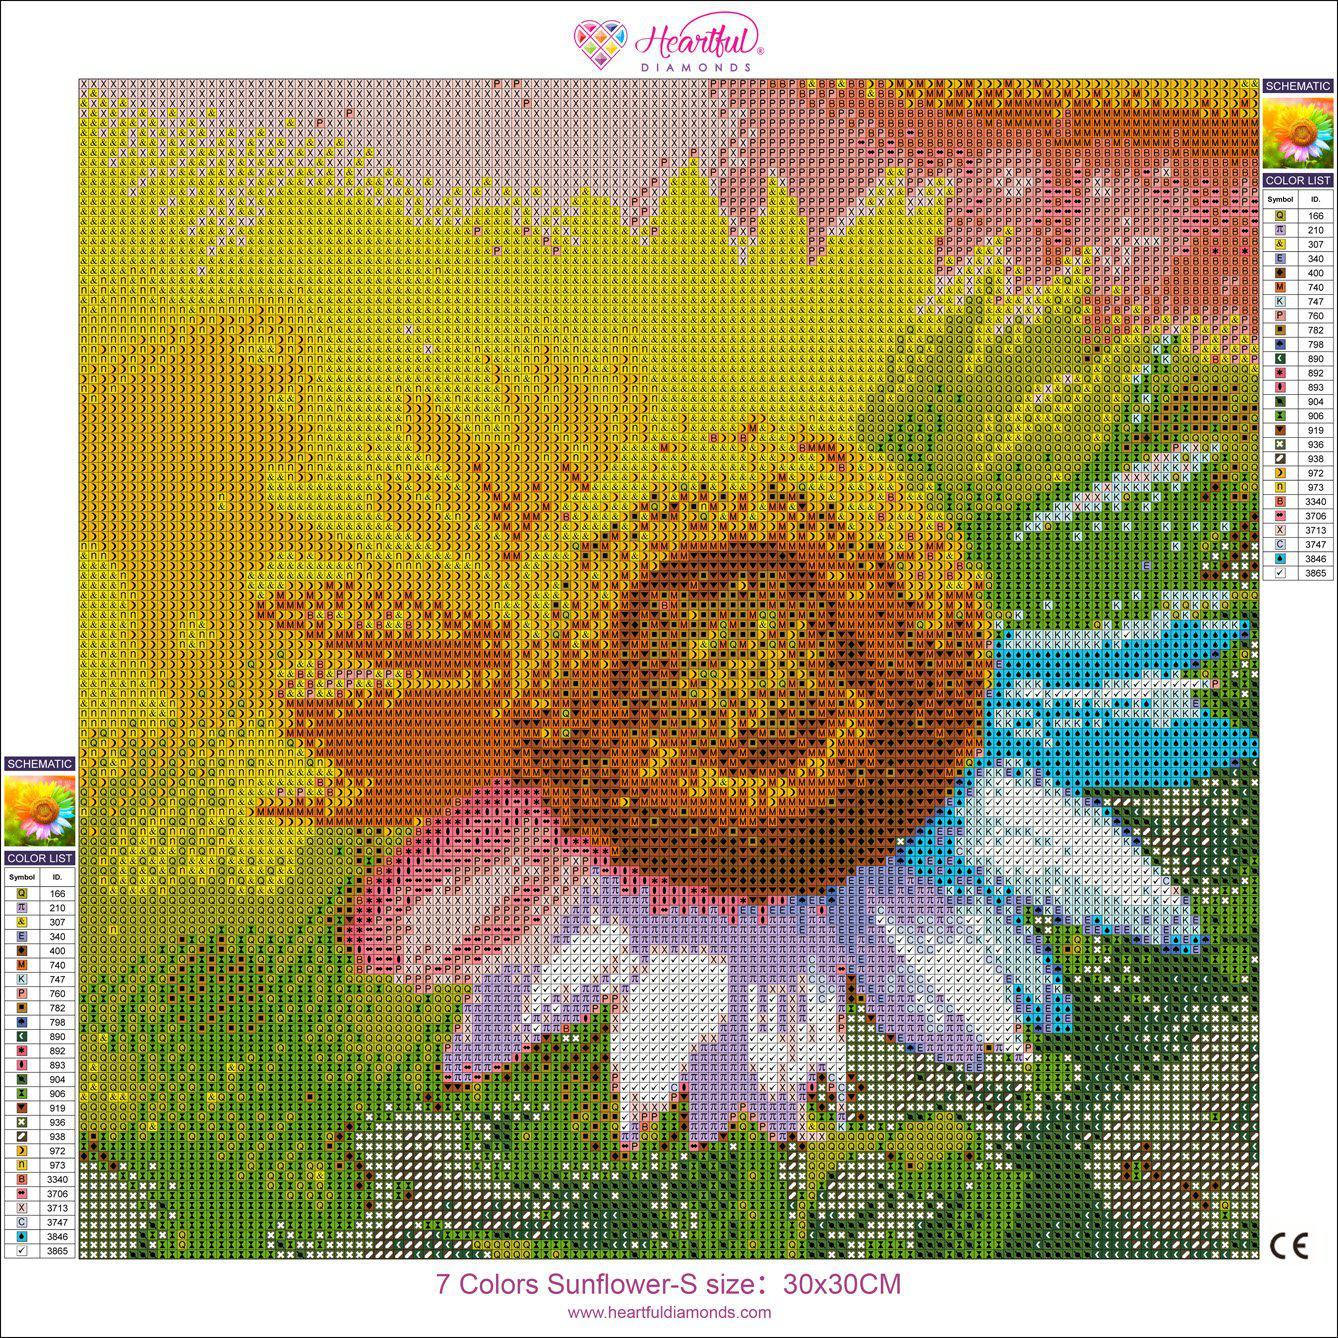 7 Colors Sunflower-Diamond Painting Kit -30x30cm (12x12 in)-Round-Heartful Diamonds